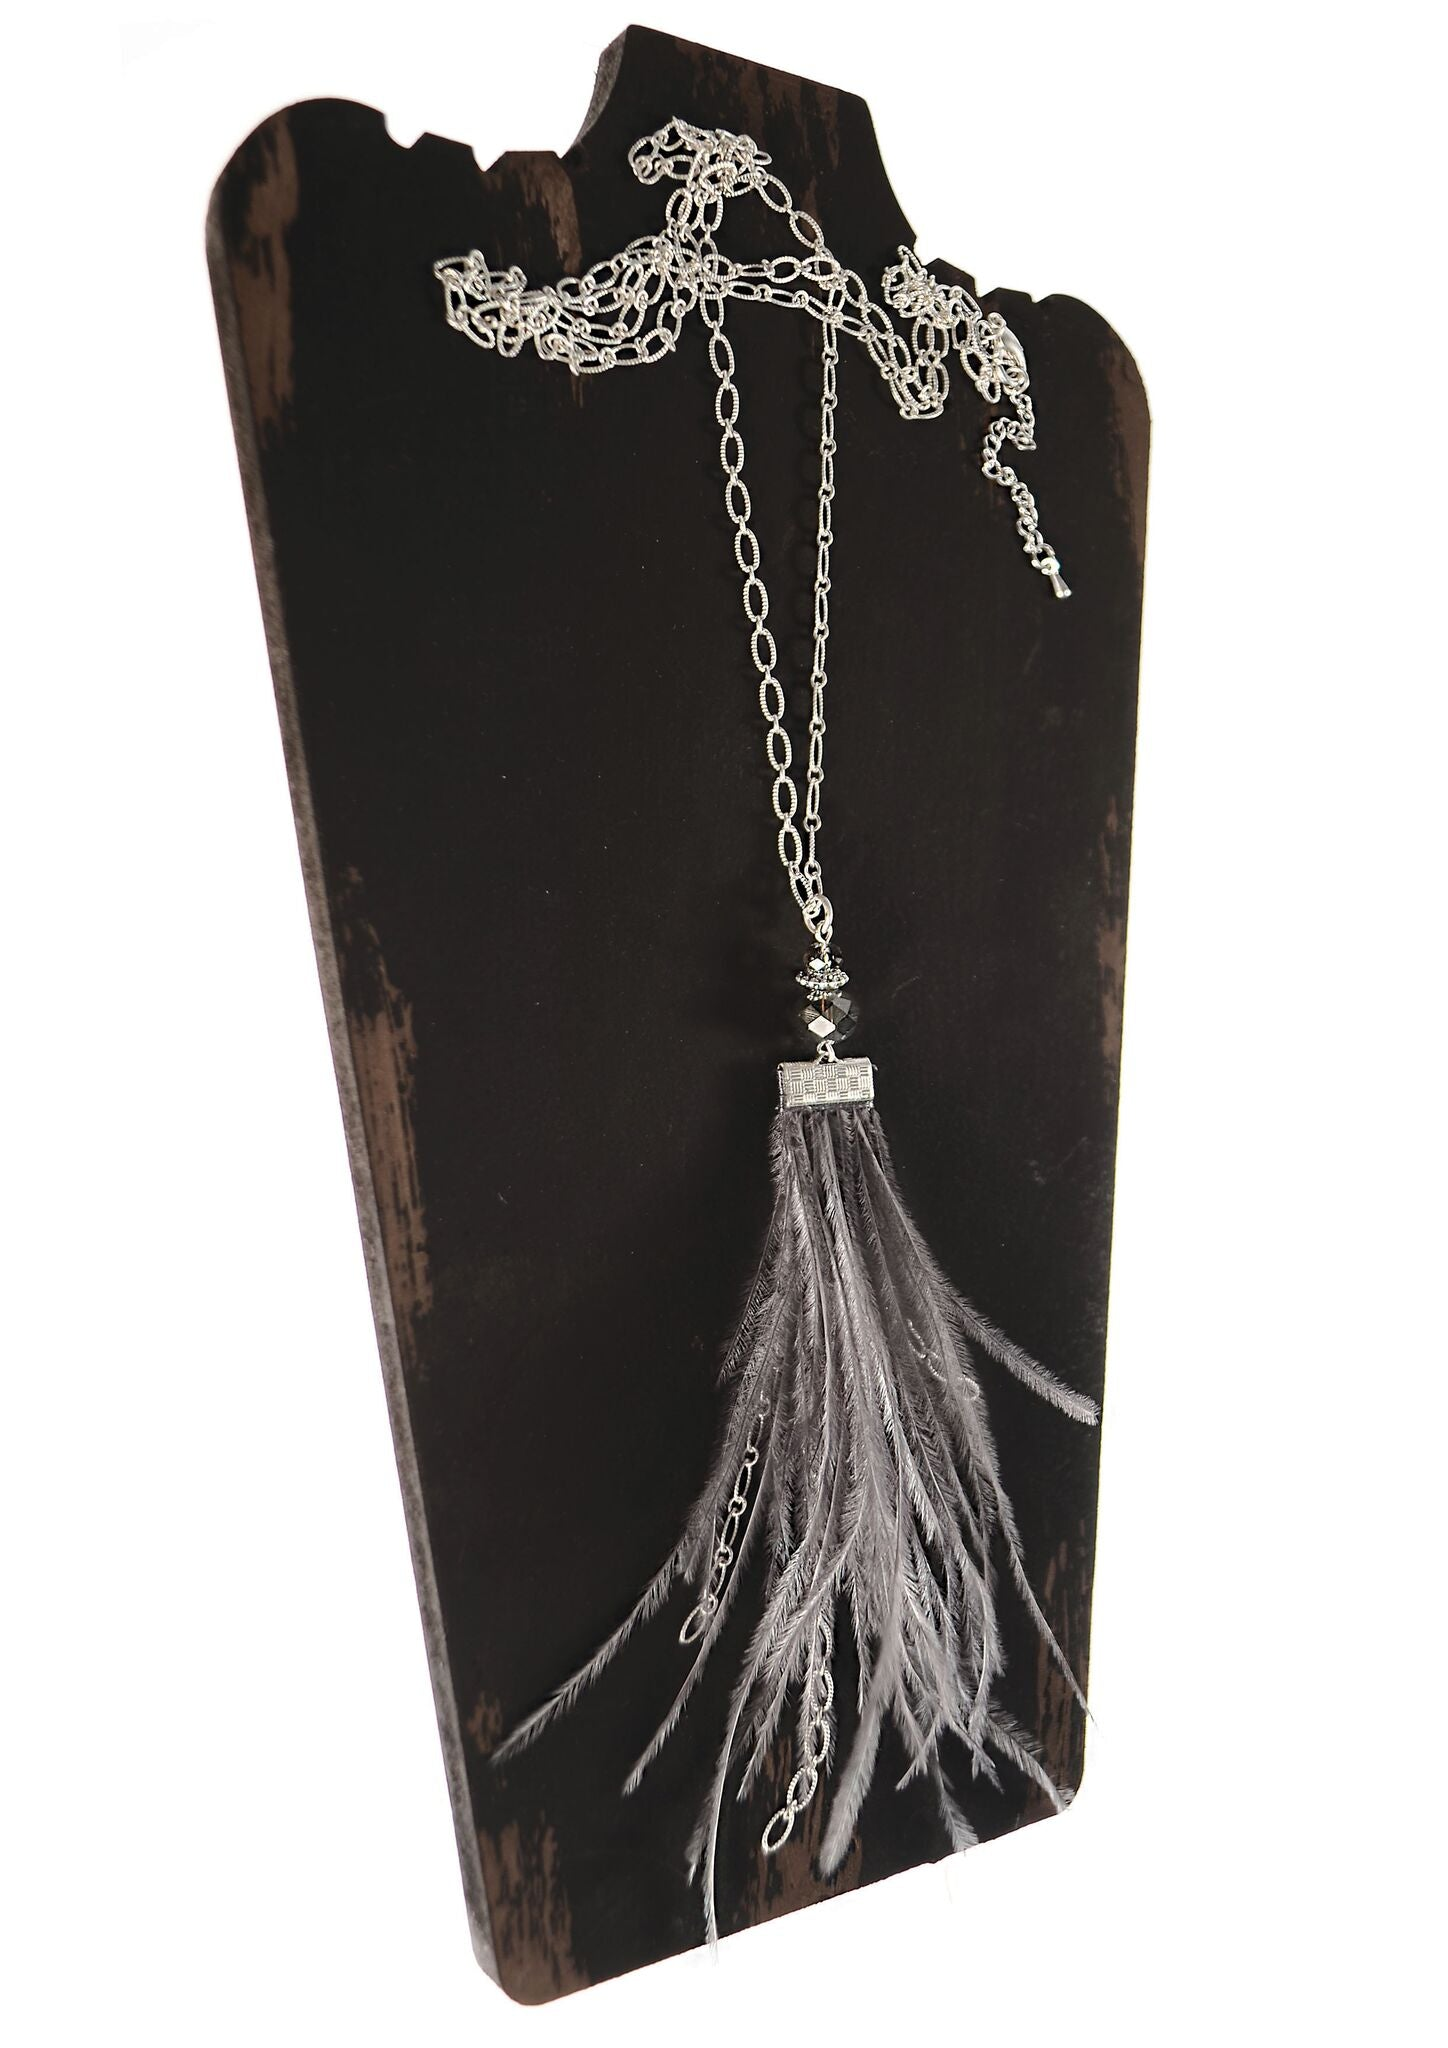 Forever Feathers - Worn Silver / Smoke Feather Pendant Necklace - Feathers Of Italy